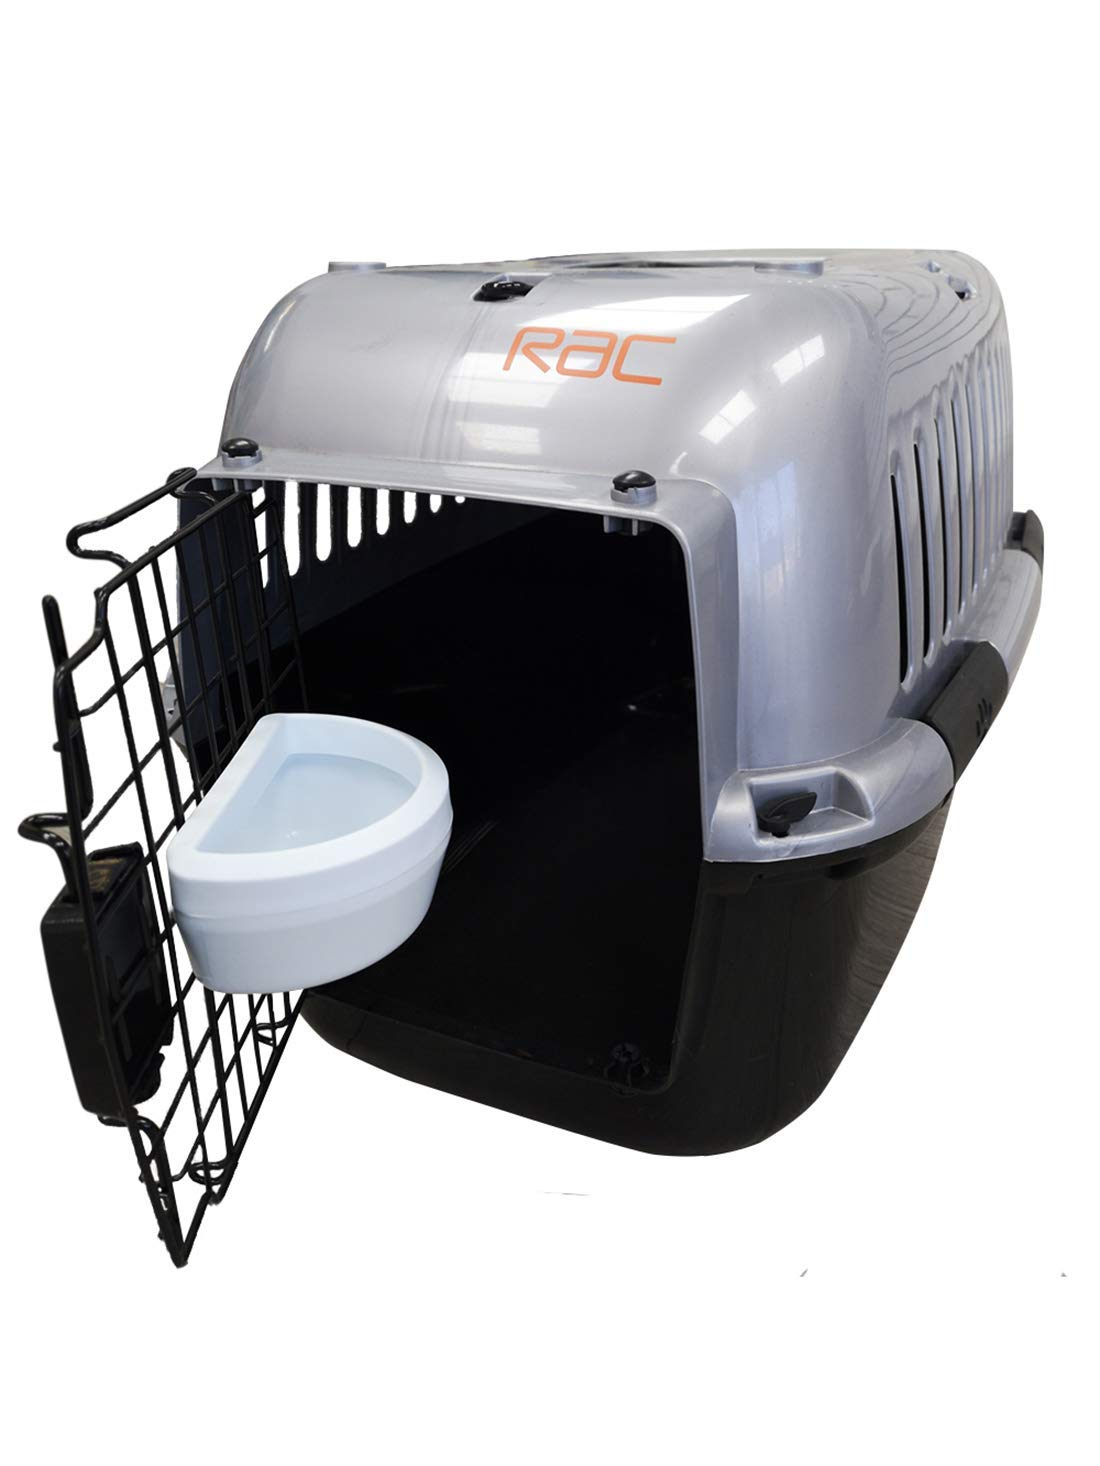 RAC Pet Carrier Plastic Portable Transport Medium Cage Black/Silver – M